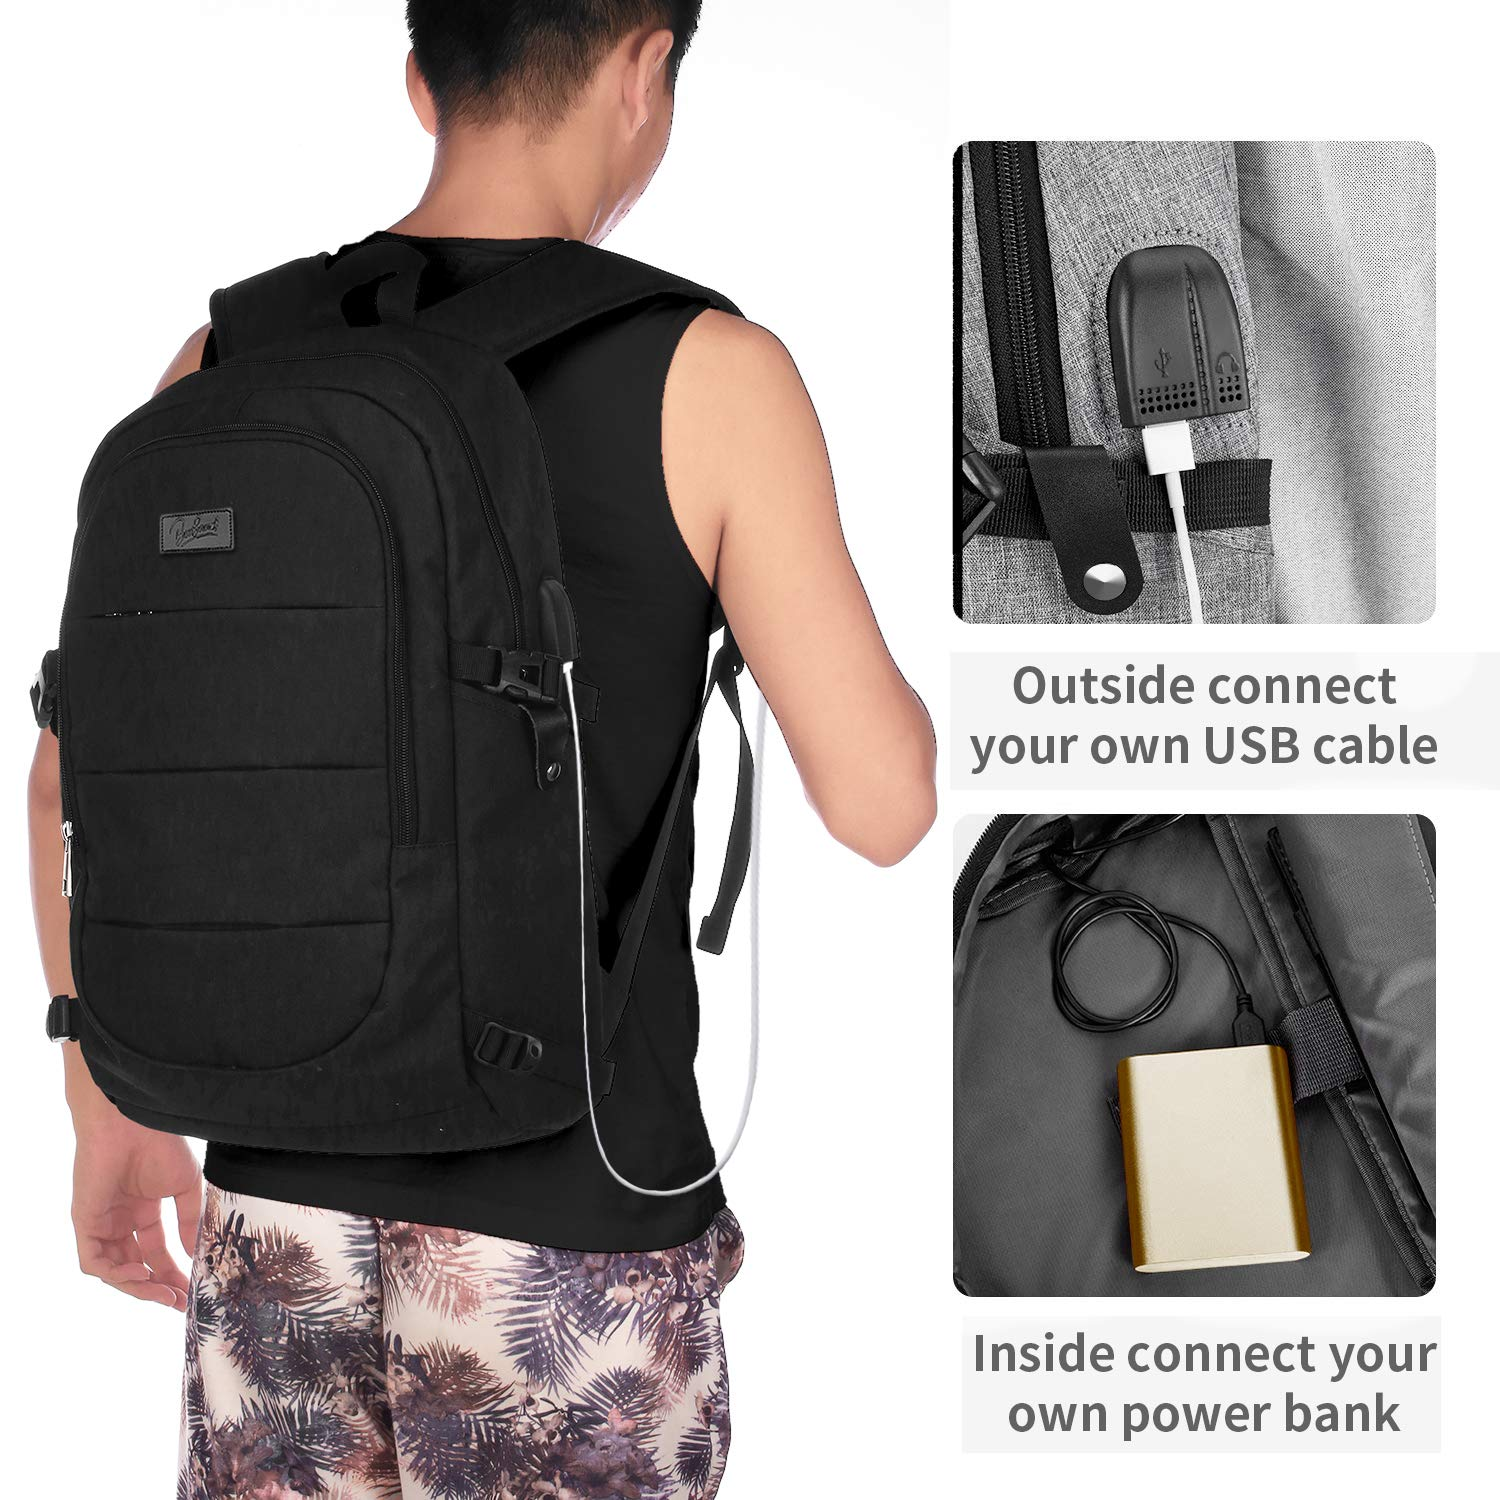 Travel Laptop Backpack,Business Backpack with USB Charging Port Headphone Interface for Men Women,Black